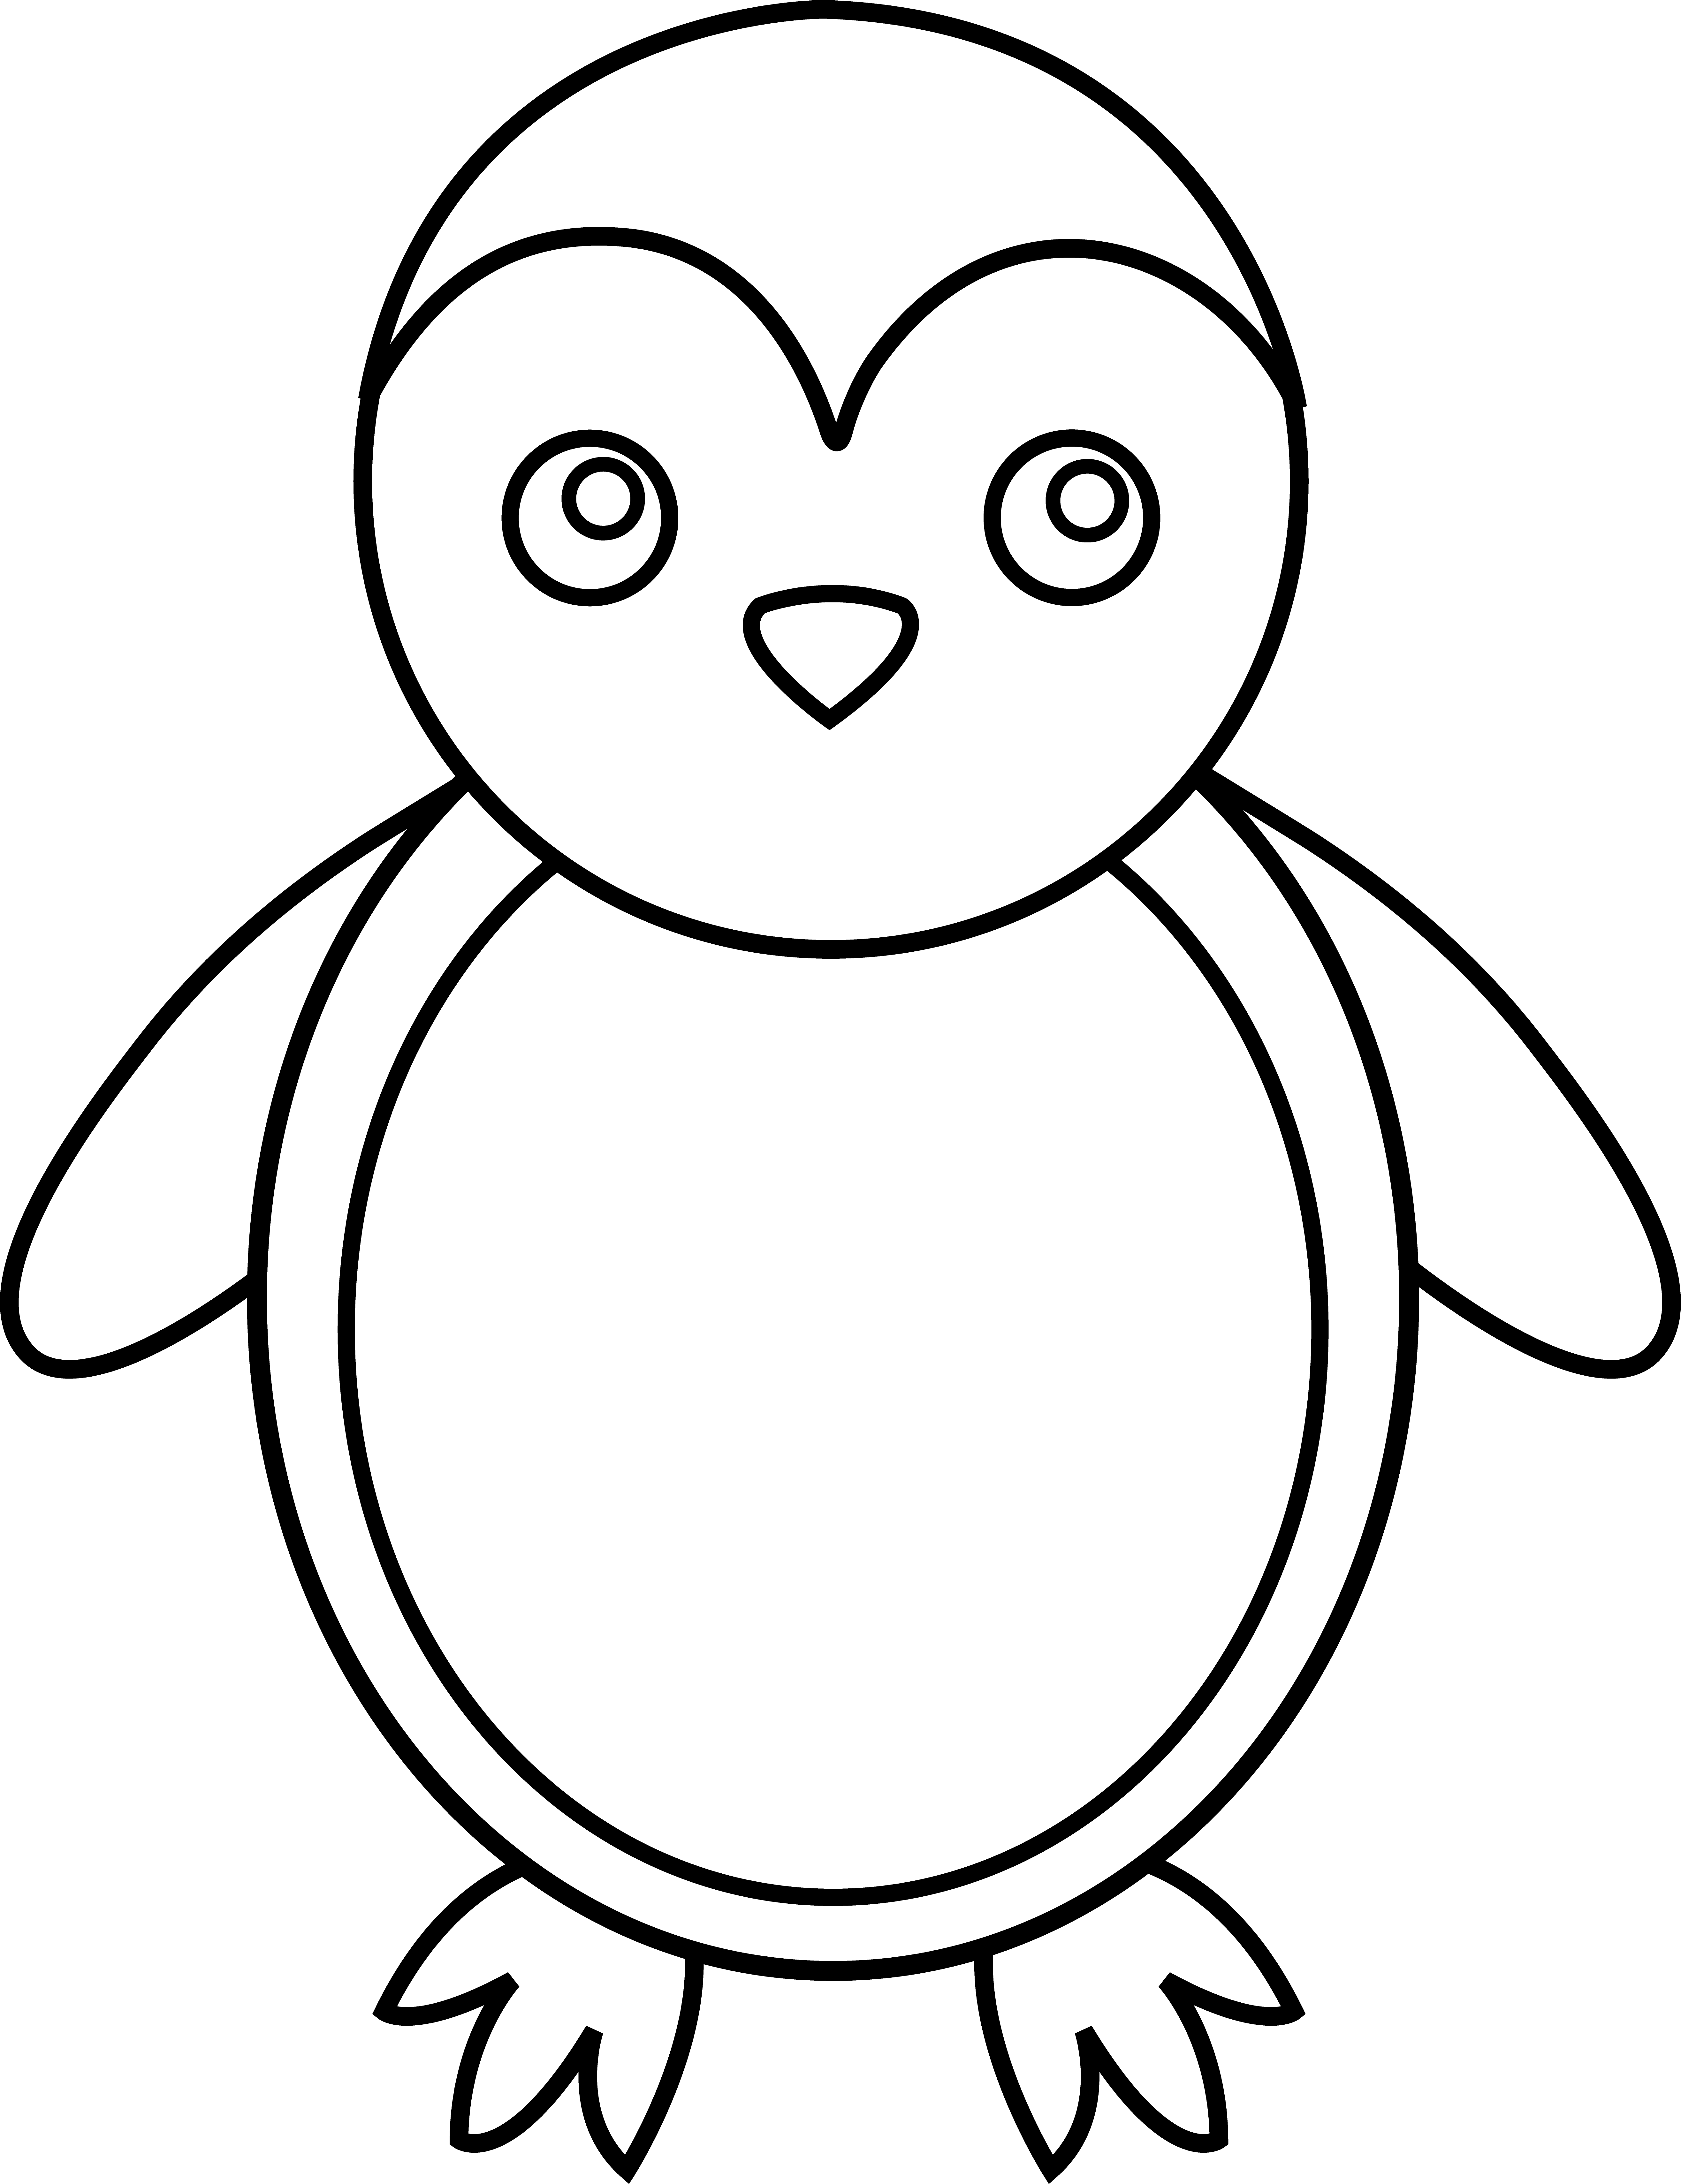 Penguin clipart black and white. Antarctica drawing clip art